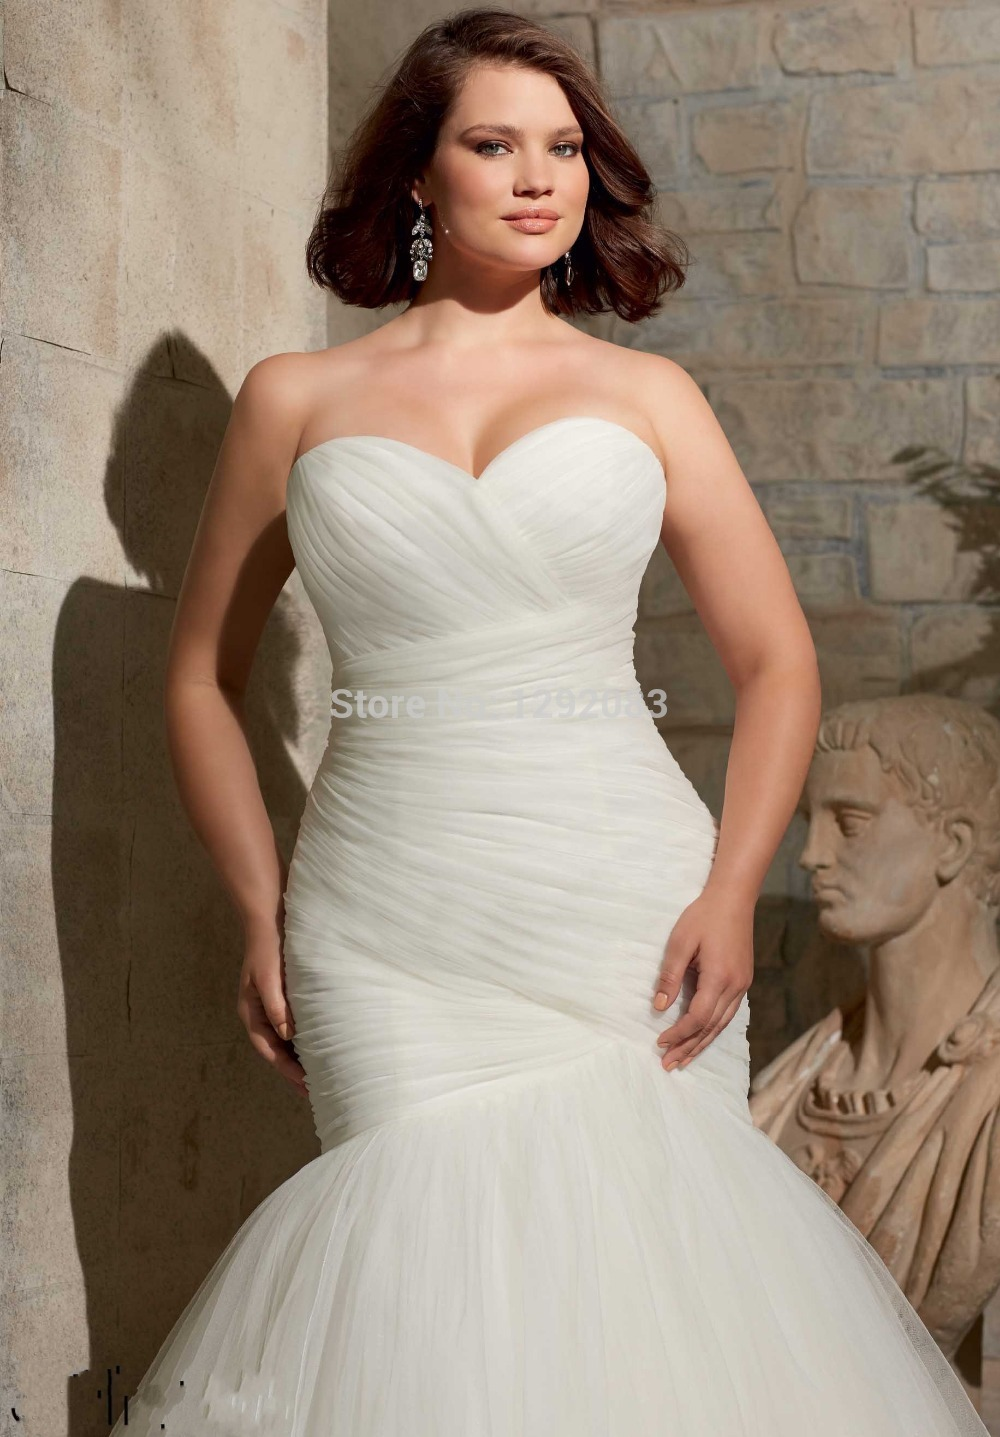 Hotplus Size Sweetheart Ruched Bodice Mermaid Lace Up Back Wedding Dress 2017 With Removable Cap Sleeves In Dresses From Weddings Events On